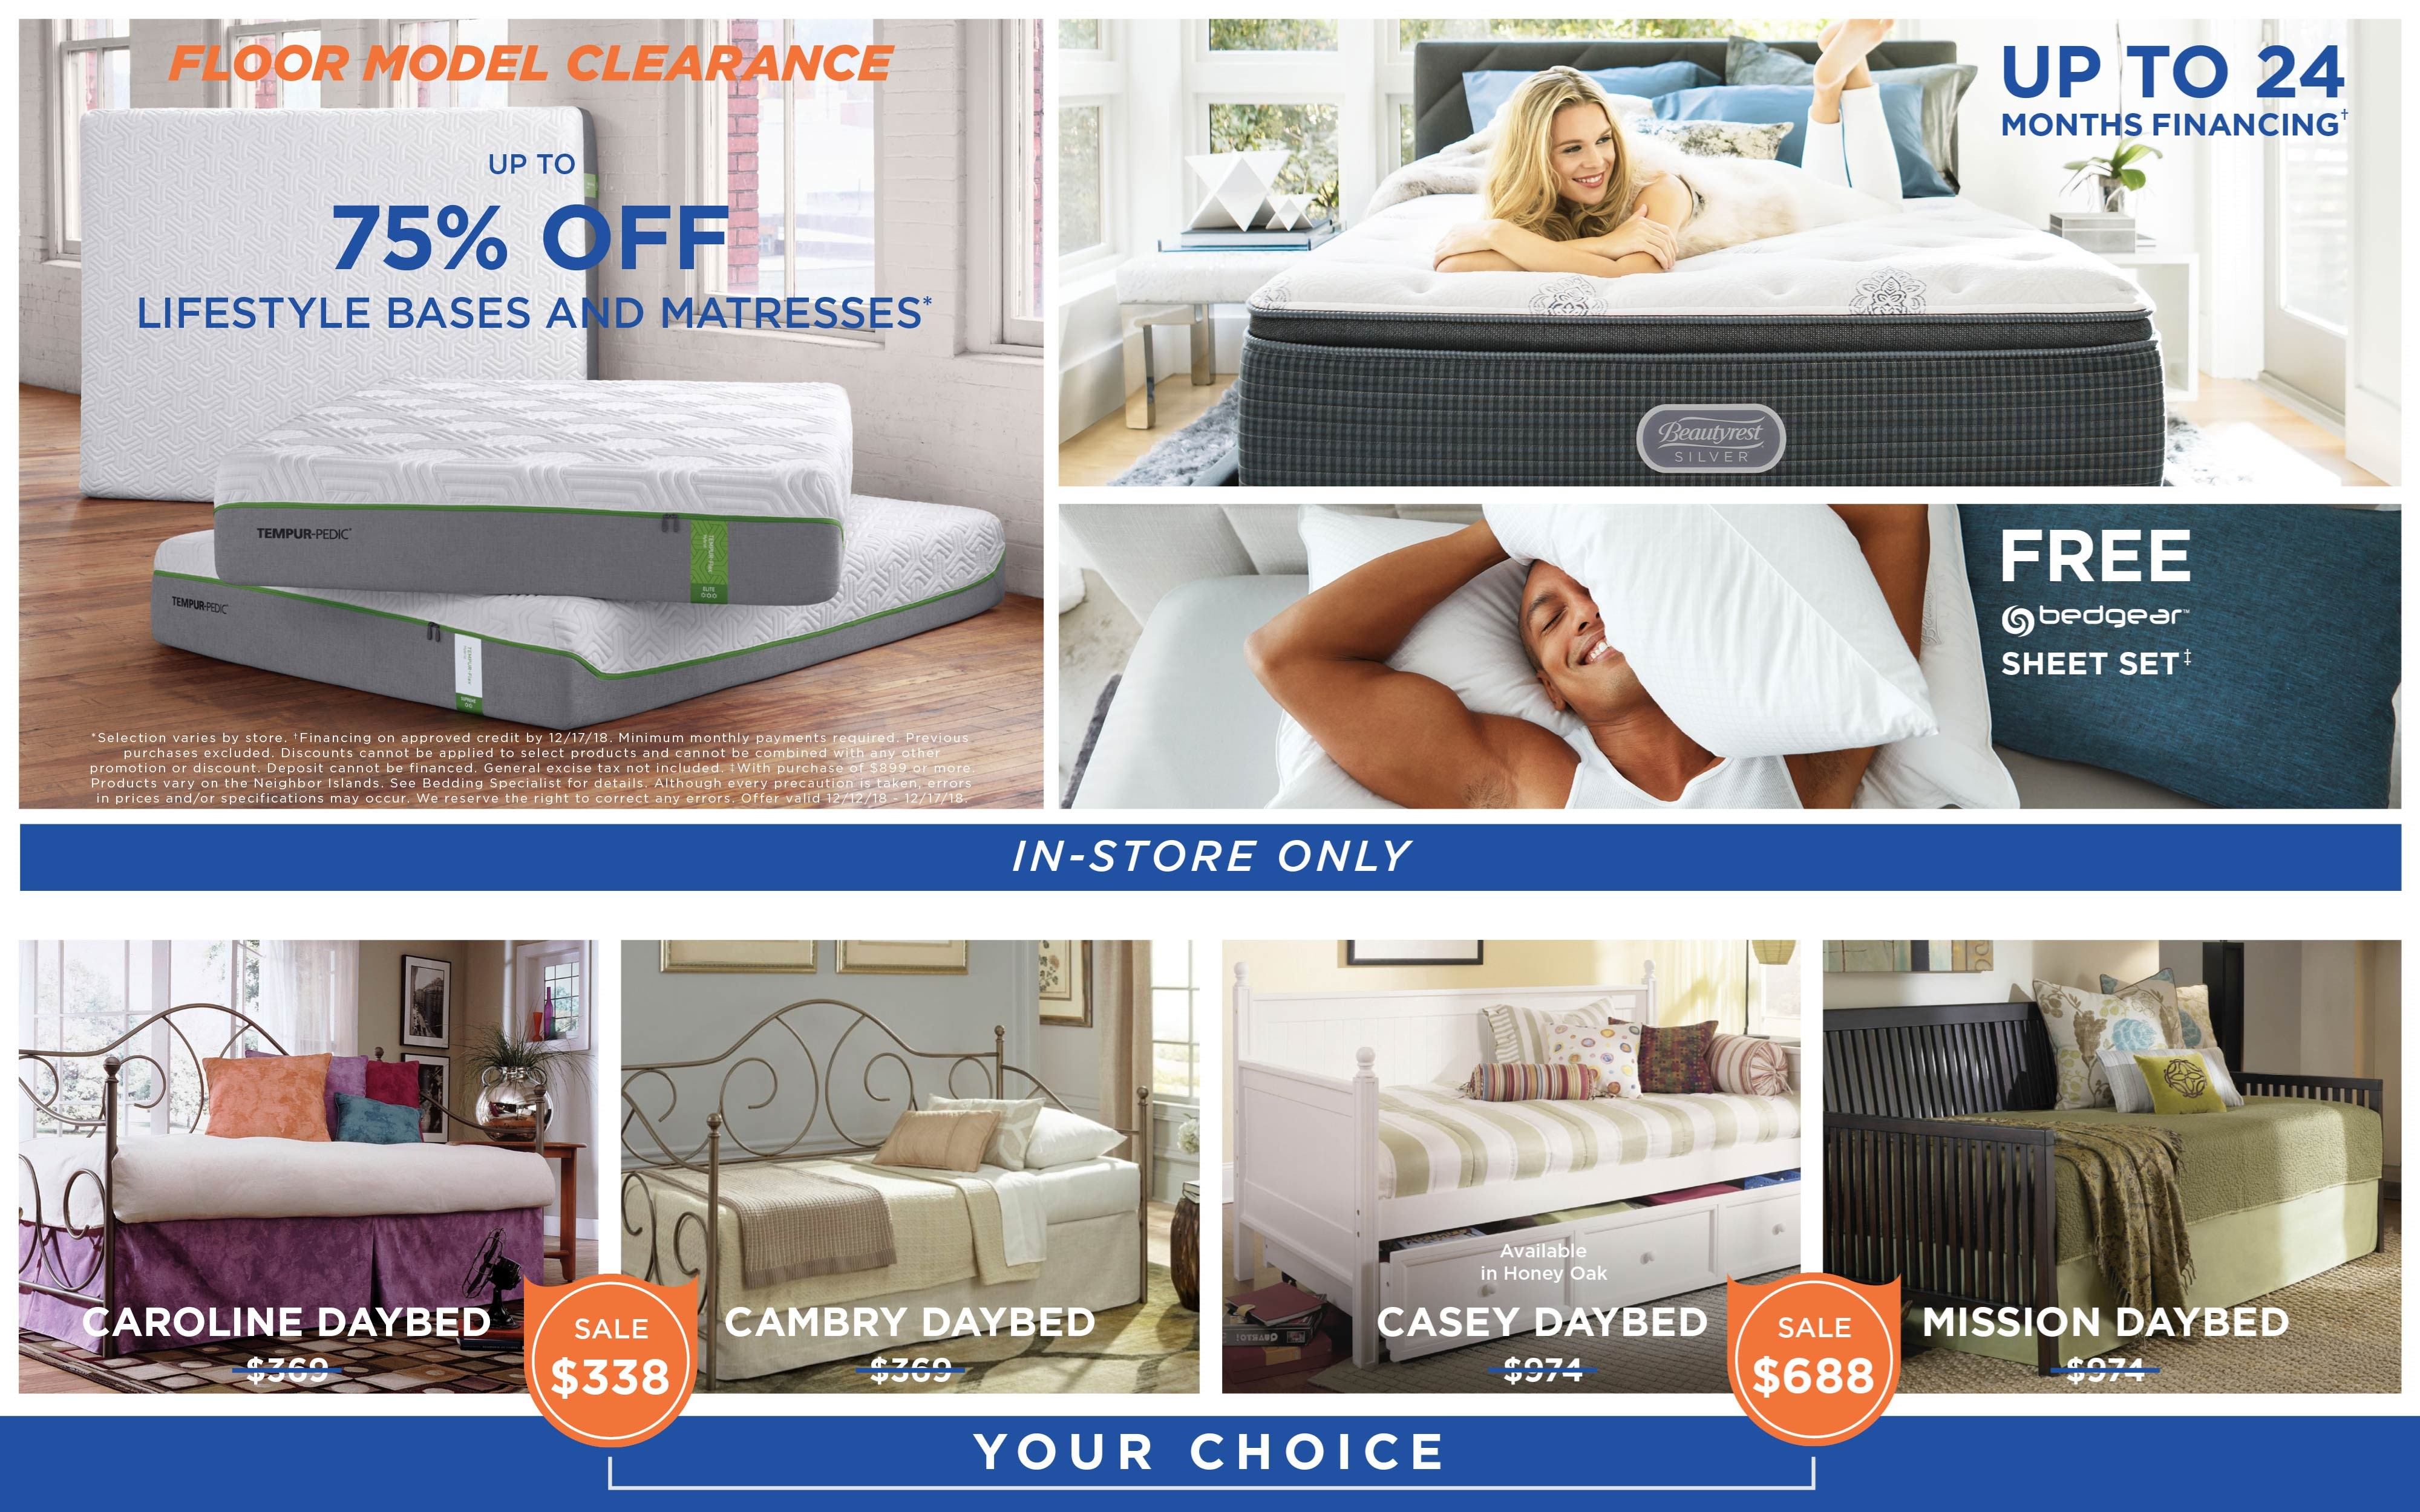 Floor model clearance; up to 75% off lifestyle bases and mattresses. Up to 24 months financing; free Bedgear sheet set. See store for details.